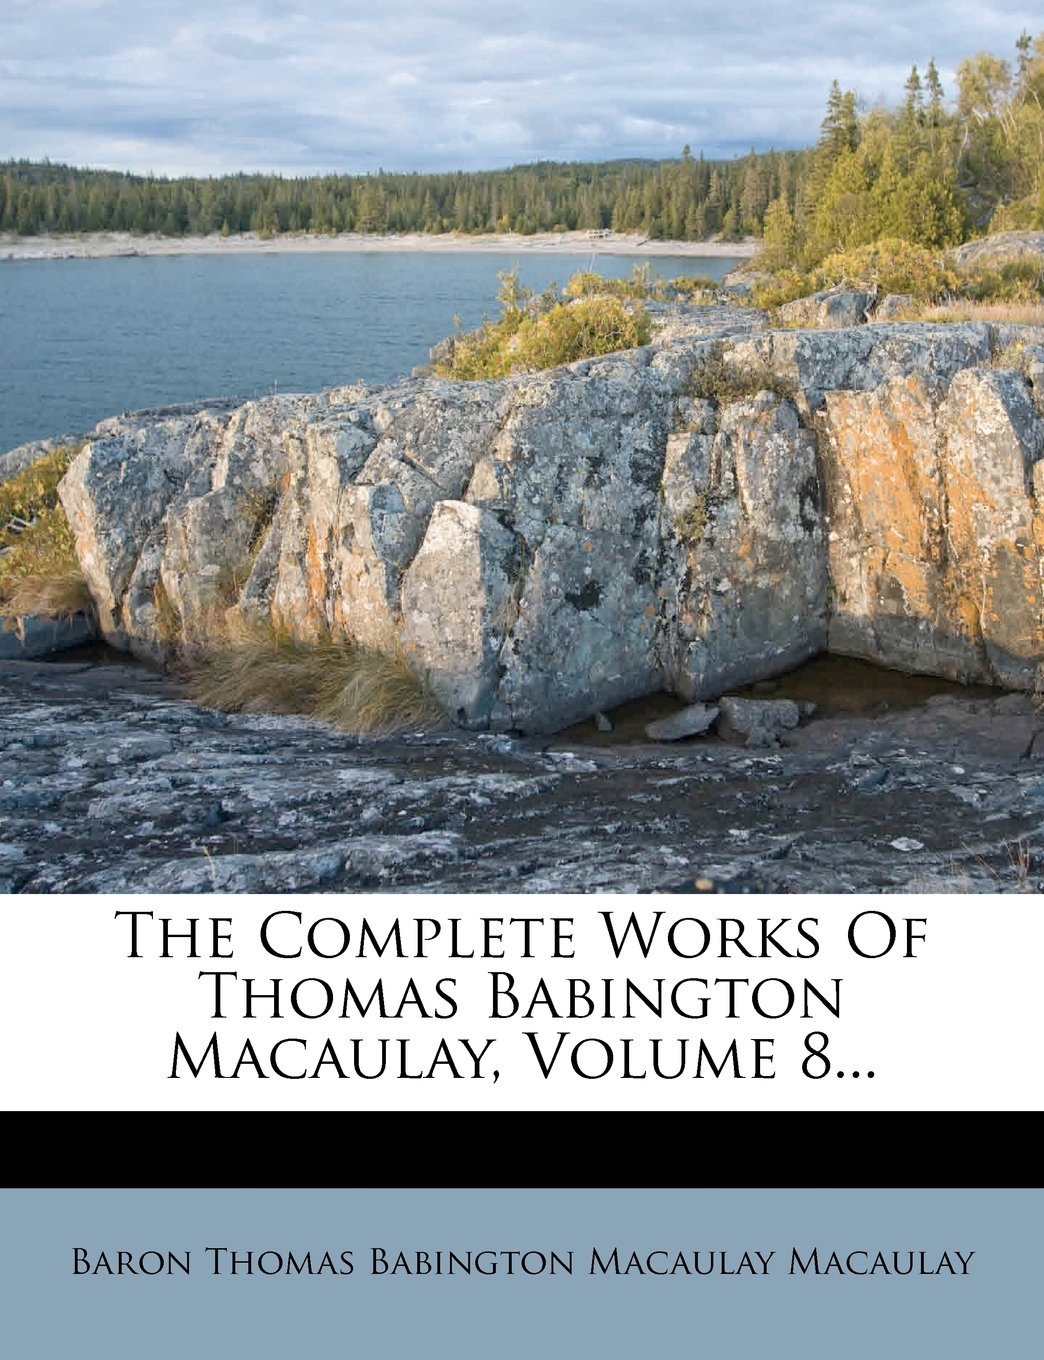 Download The Complete Works Of Thomas Babington Macaulay, Volume 8... ebook